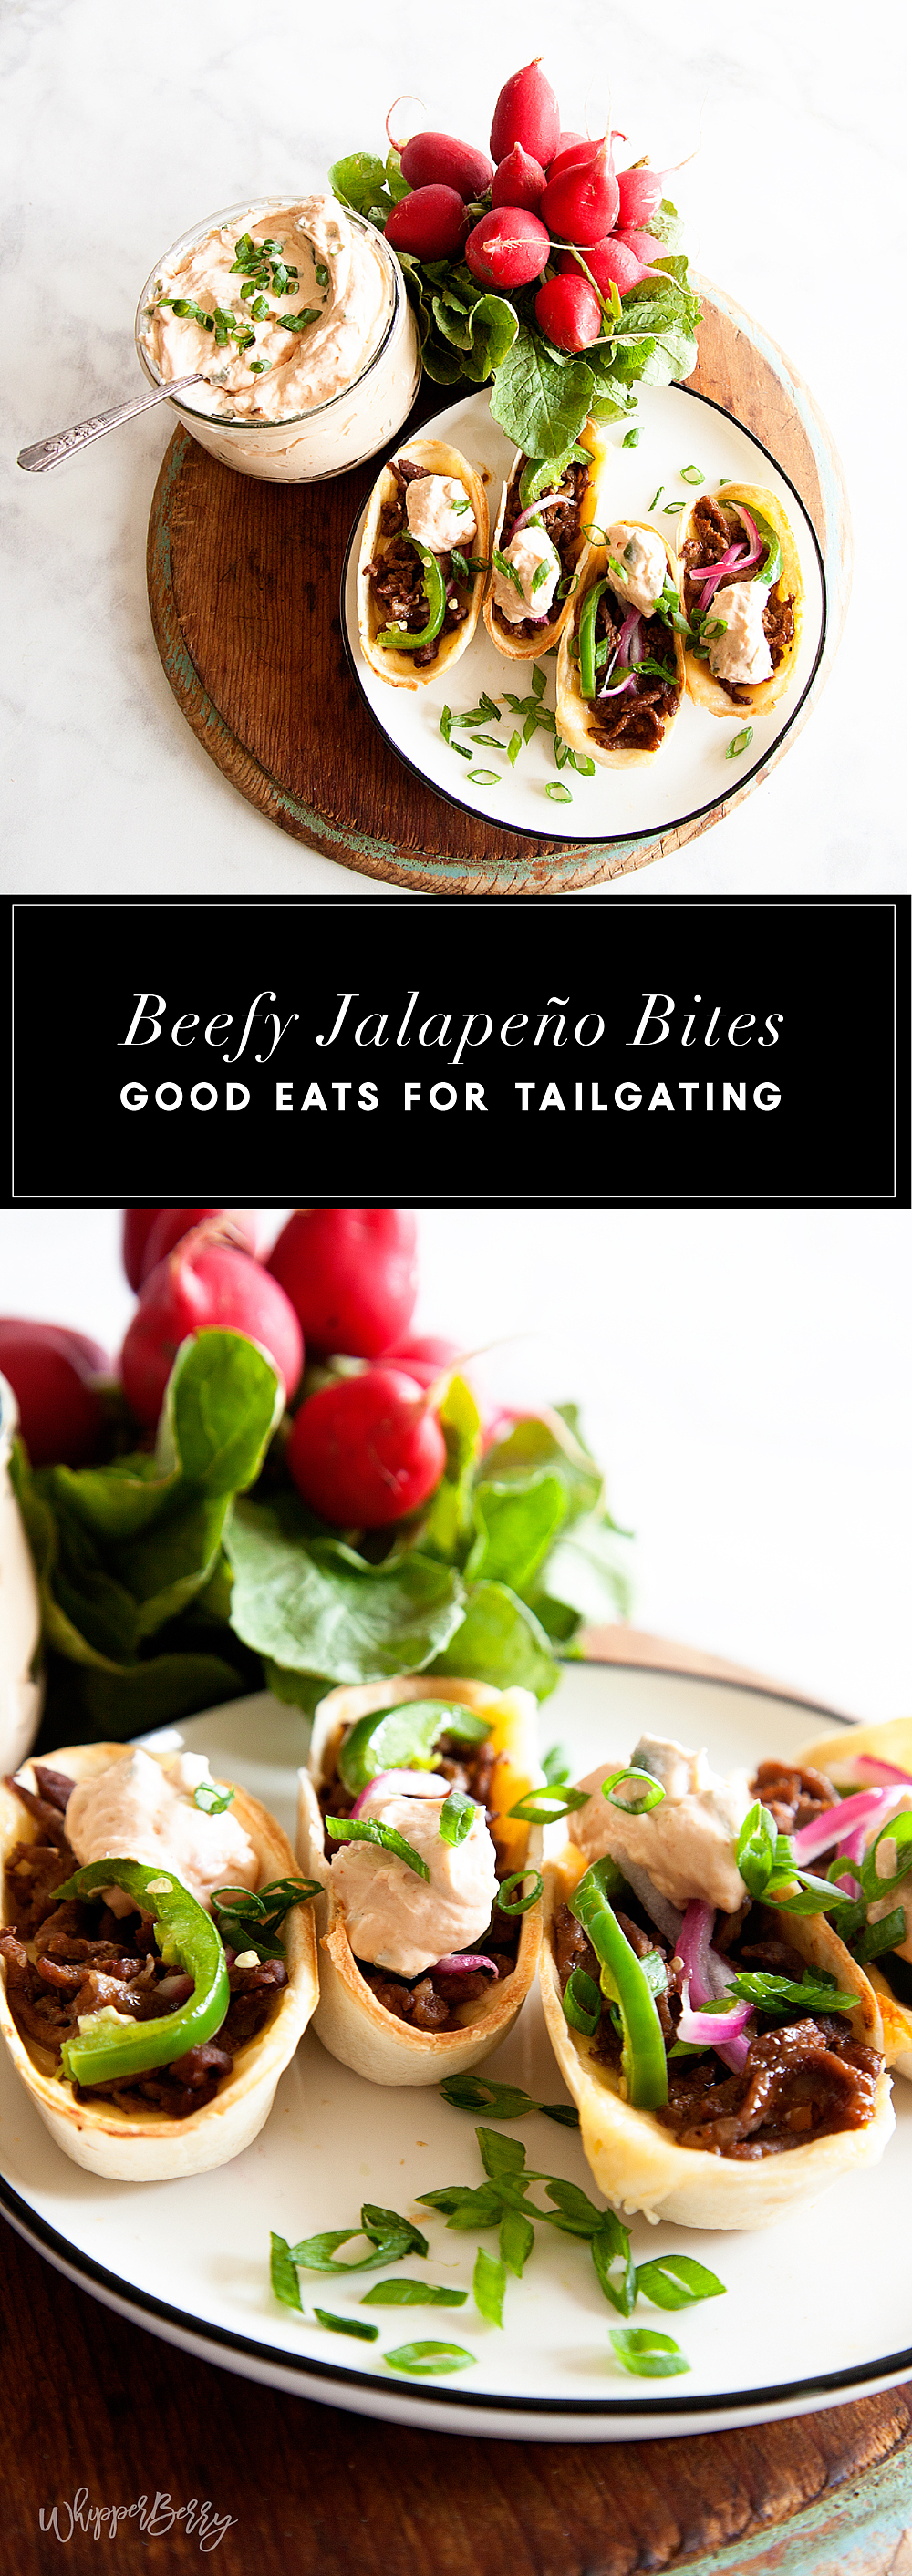 Kick up your game for GAME DAY! These Beefy Jalapeño Bites will win over even the most picky tailgater. Filled with Gouda cheese, Old El Paso seasoned beef and topped with scrumptious homemade pickled jalapeños… What's not to LOVE! Created by WhipperBerry